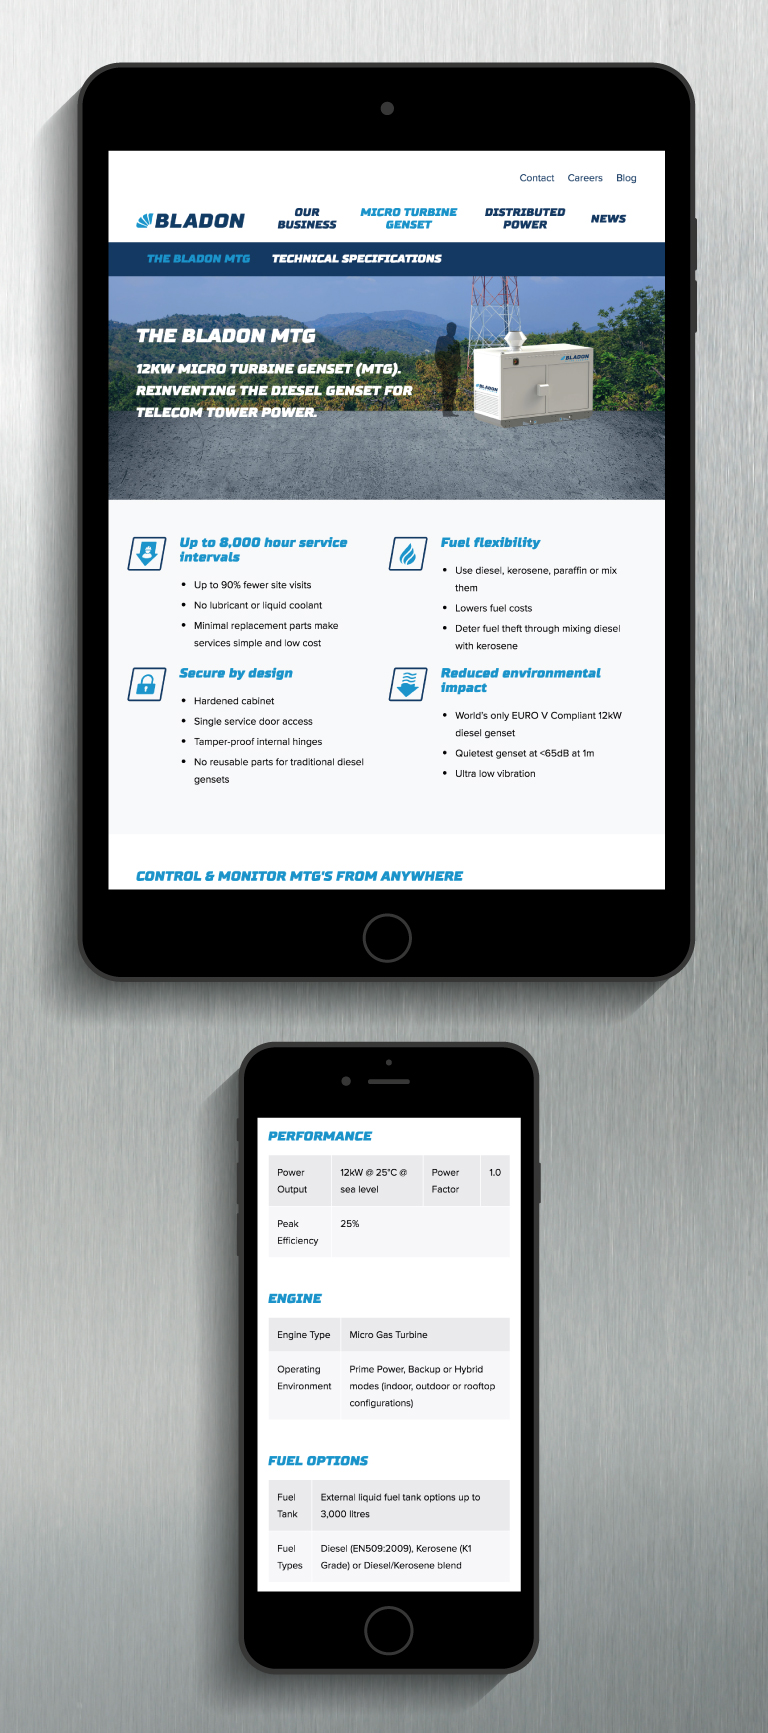 Bladon website on a iPad and iPhone - mobile